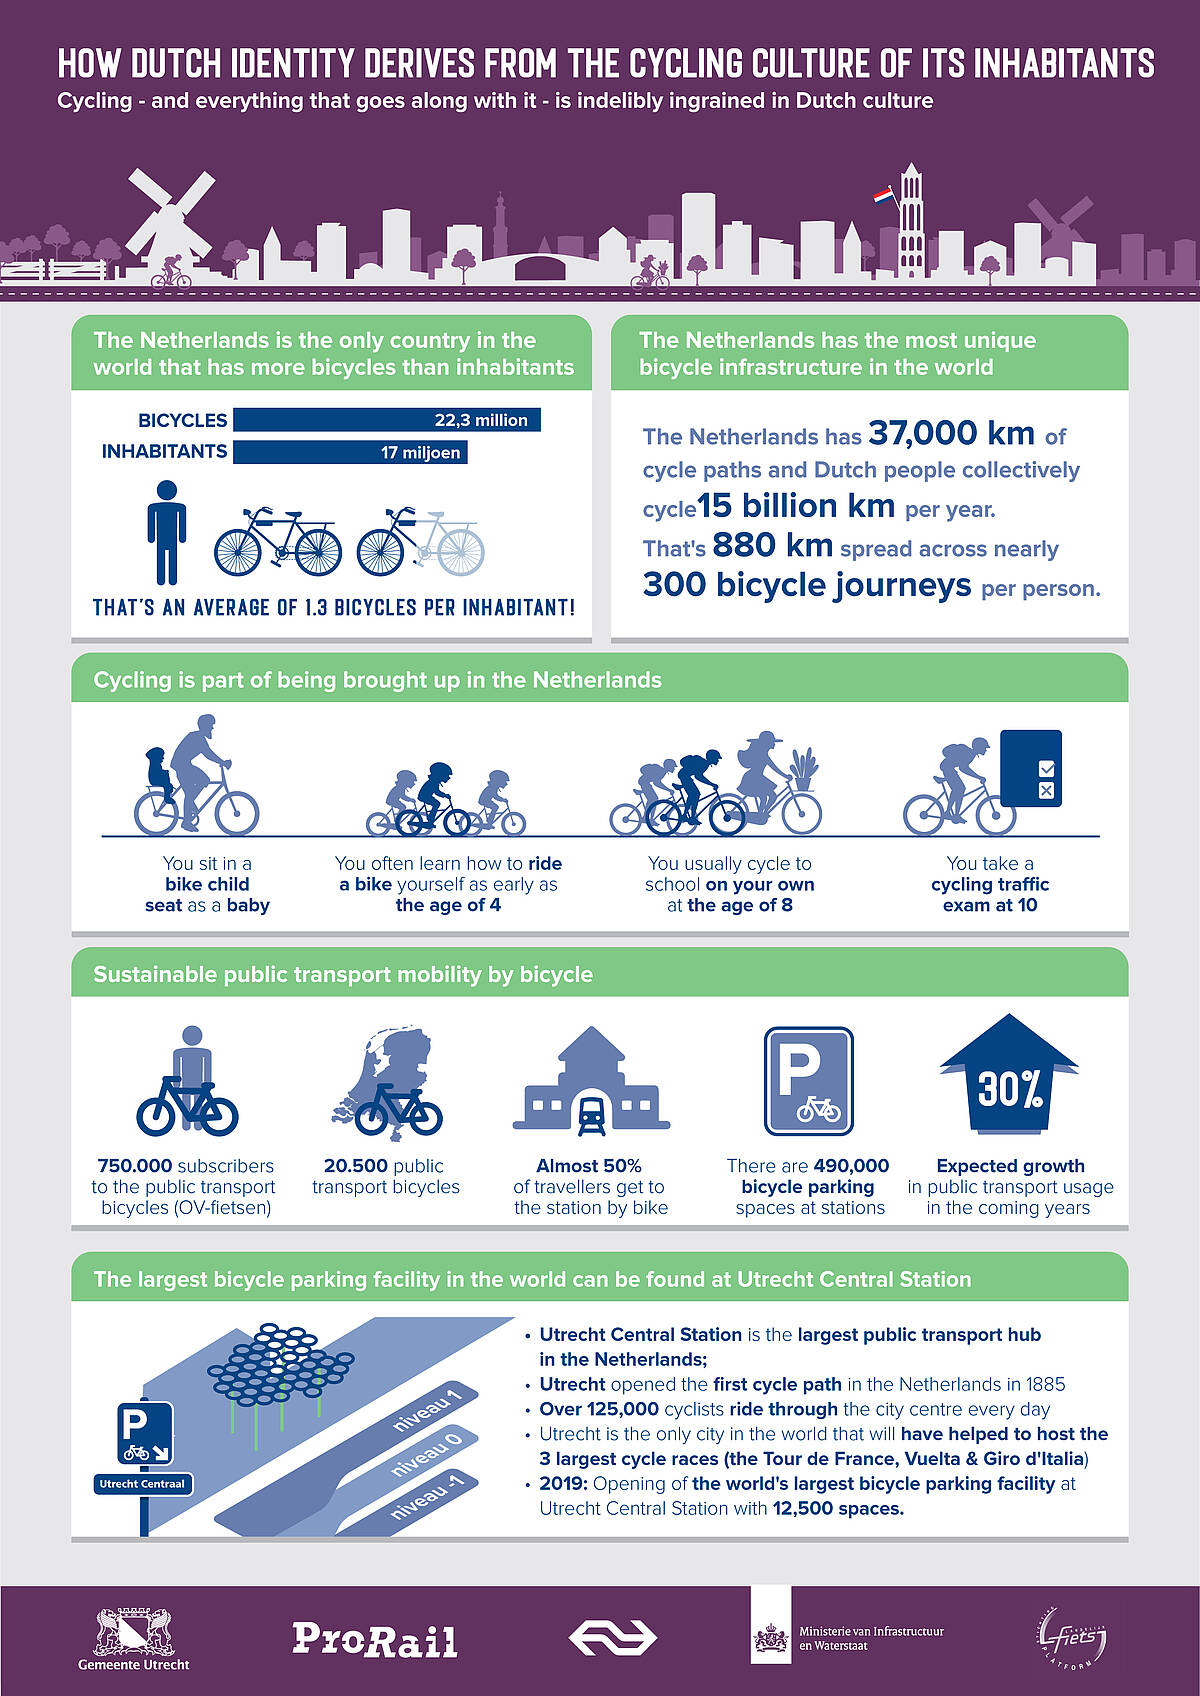 HOW DUTCH IDENTITY DERIVES FROM THE CYCLING CULTURE OF ITS INHABITANTS  Cycling - and everything that goes along with it - is indelibly ingrained in Dutch culture   The Netherlands is the only country in the world that has more bicycles than inhabitants  22.3 million bicycles 17 million inhabitants  That's an average of 1.3 bicycles per inhabitant!  The Netherlands has the most unique bicycle infrastructure in the world The Netherlands has 37,000 kilometres of cycle paths and Dutch people collectively cycle 15 billion kilometres per year. That's 880 km spread across nearly 300 bicycle journeys per person.  Cycling is part of being brought up in the Netherlands •	You sit in a bike child seat as a baby •	You often learn how to ride a bike yourself as early as the age of 4 •	You usually cycle to school on your own at the age of 8 •	You take a cycling traffic exam at 10  Sustainable public transport mobility by bicycle •	750,000 people with subscriptions to the public transport bicycles (OV-fietsen) •	20,500 public transport bicycles •	Almost 50% of travellers get to the station by bike •	There are 490,000 bicycle parking spaces at stations •	Growth in public transport usage is expected in the coming years   The largest bicycle parking facility in the world can be found at Utrecht Central Station  •	Utrecht Central Station is the largest public transport hub in the Netherlands;  •	Utrecht opened the first cycle path in the Netherlands in 1885 •	Over 125,000 cyclists ride through the city centre every day •	Utrecht is the only city in the world that will have helped to host the 3 largest cycle races (the Tour de France, Vuelta & Giro d'Italia) •	2019: Opening of the world's largest bicycle parking facility at Utrecht Central Station with 12,500 spaces.